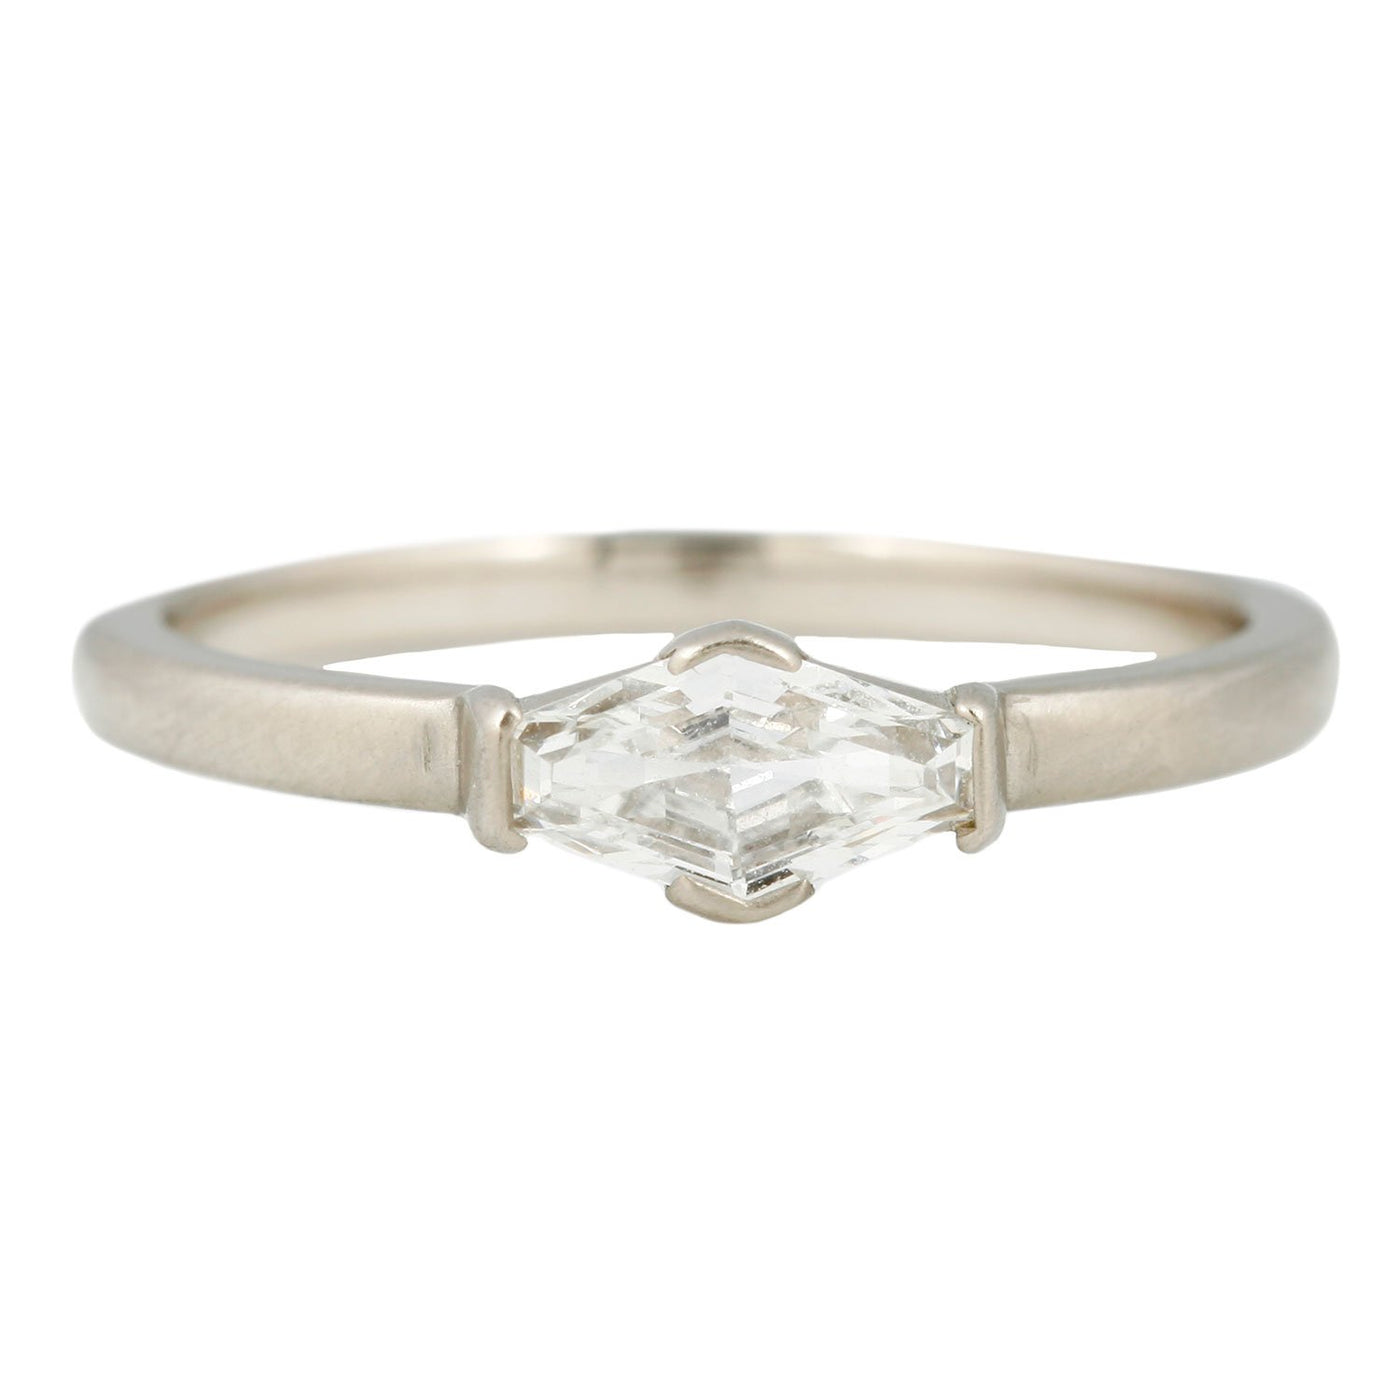 Rebecca Overmann Elongated Hexagon Diamond Solitaire